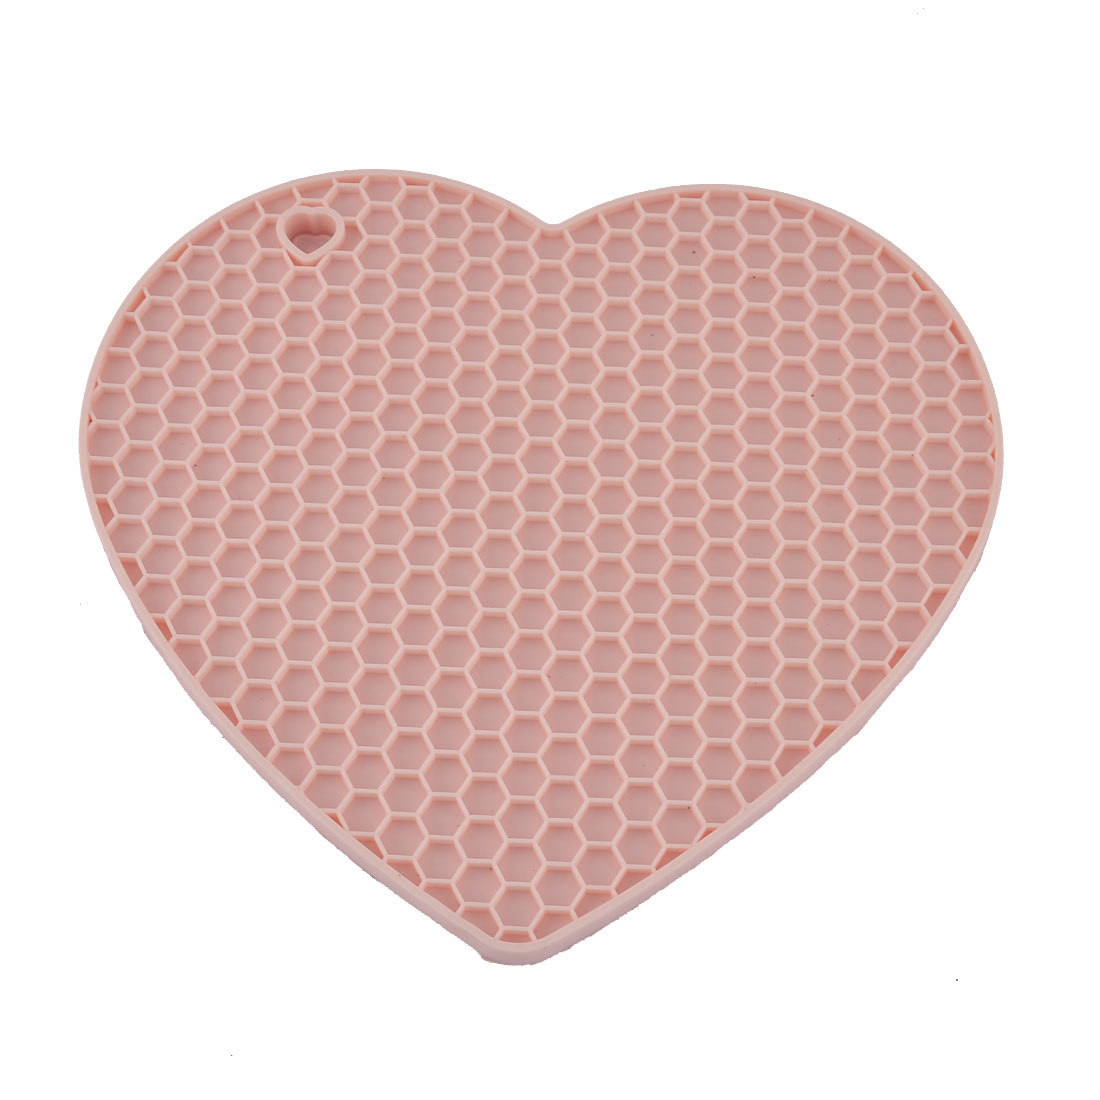 Silicone Heart Shaped Honeycomb Pattern Heat Resistant Tableware Mat Pot Pad Pink